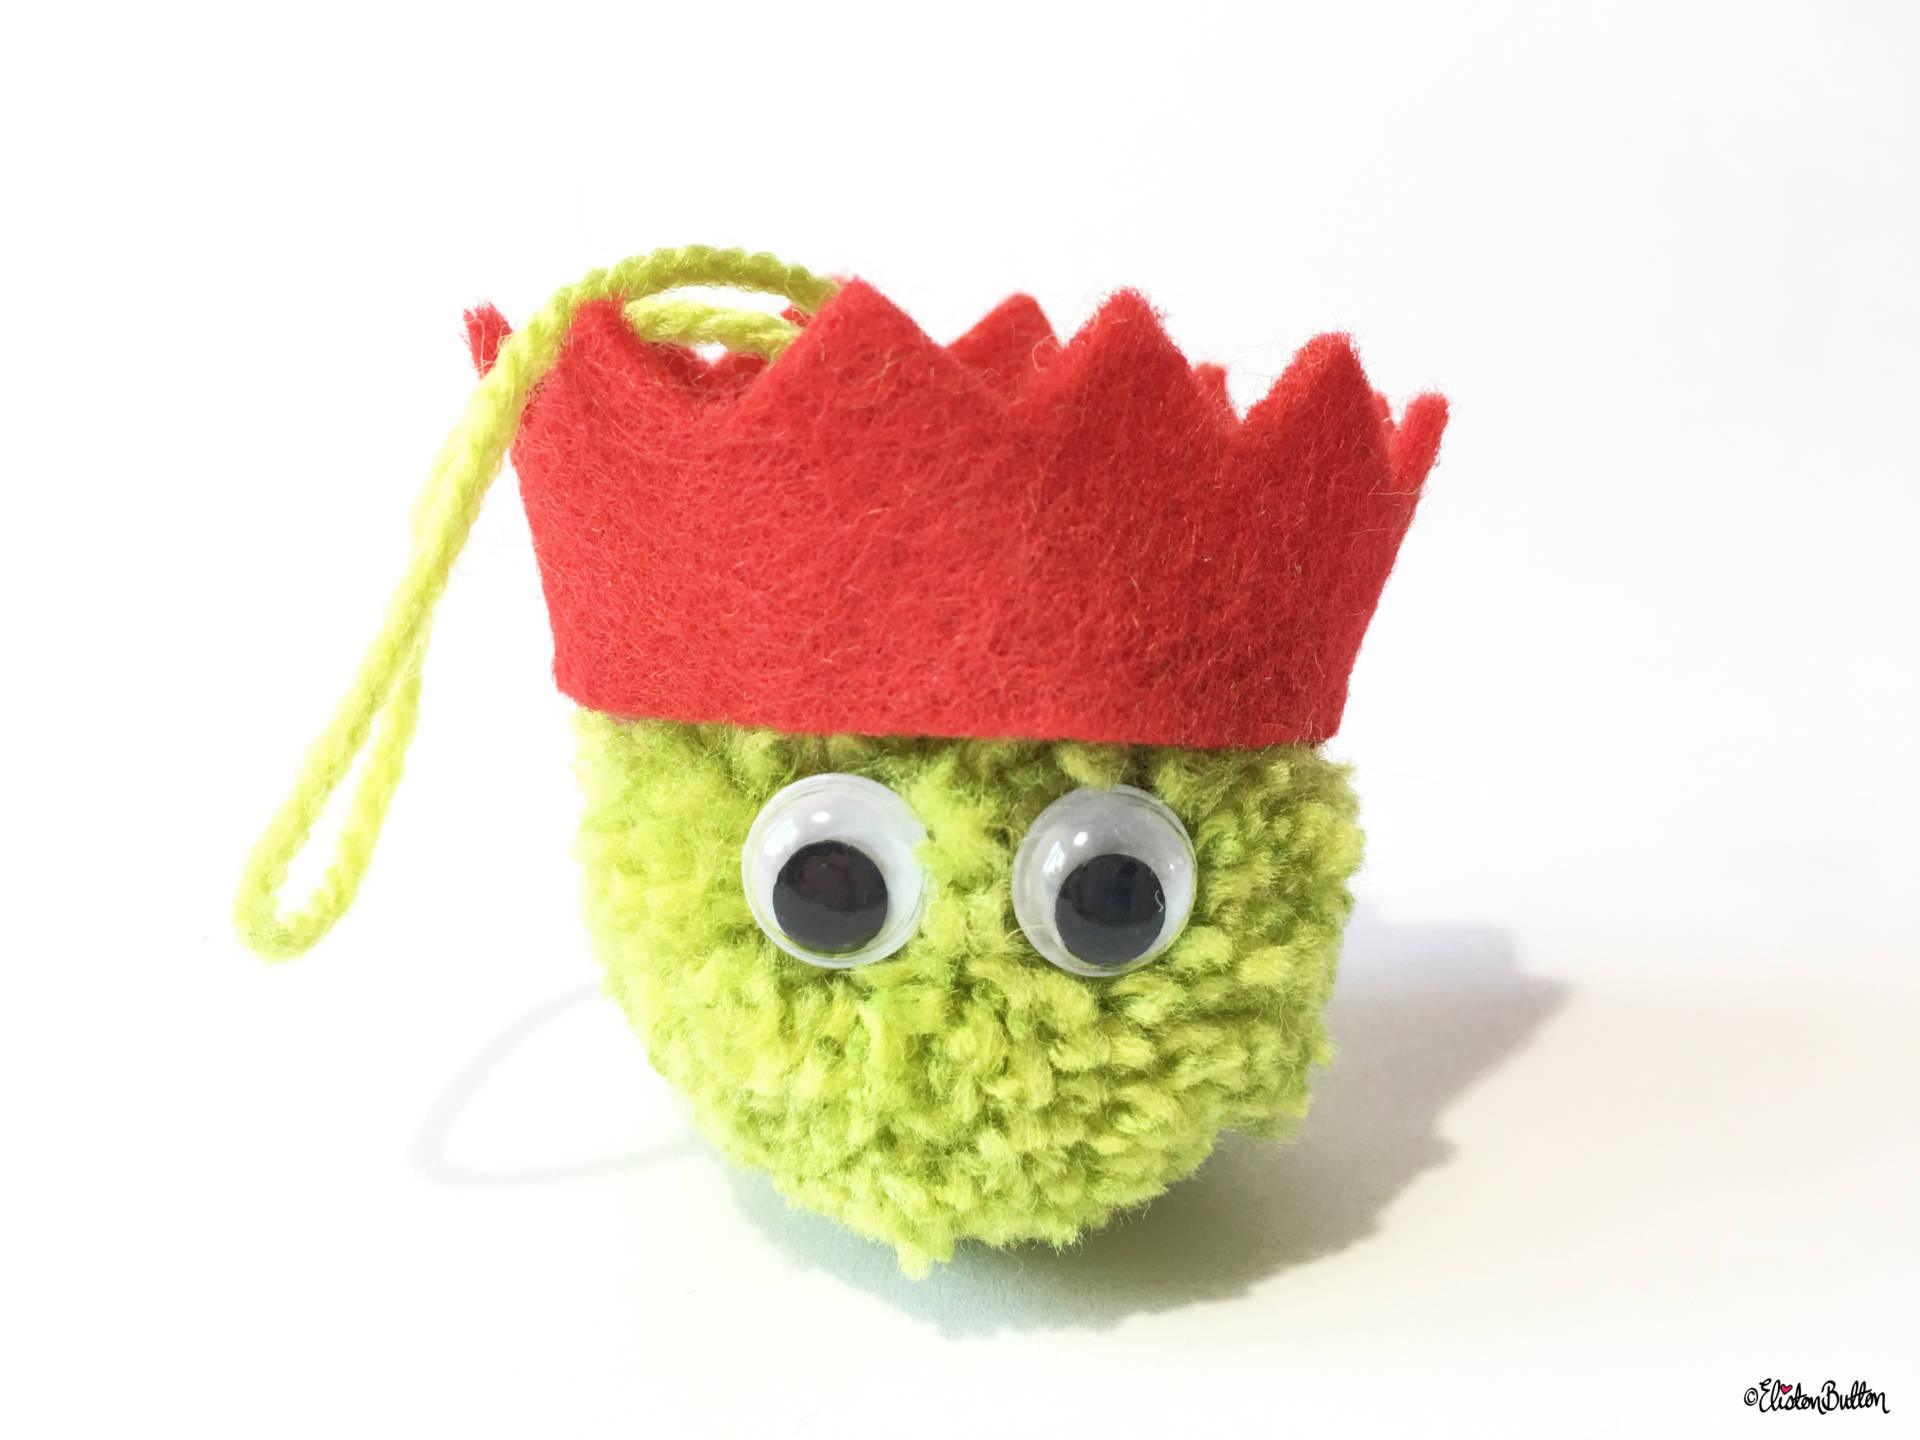 Light Green, Red Party Hat Pom Pom Sprout Christmas Decoration - Create 30 - No. 8 & 9 - Christmas Sprout Garland and Decorations at www.elistonbutton.com - Eliston Button - That Crafty Kid – Art, Design, Craft & Adventure.